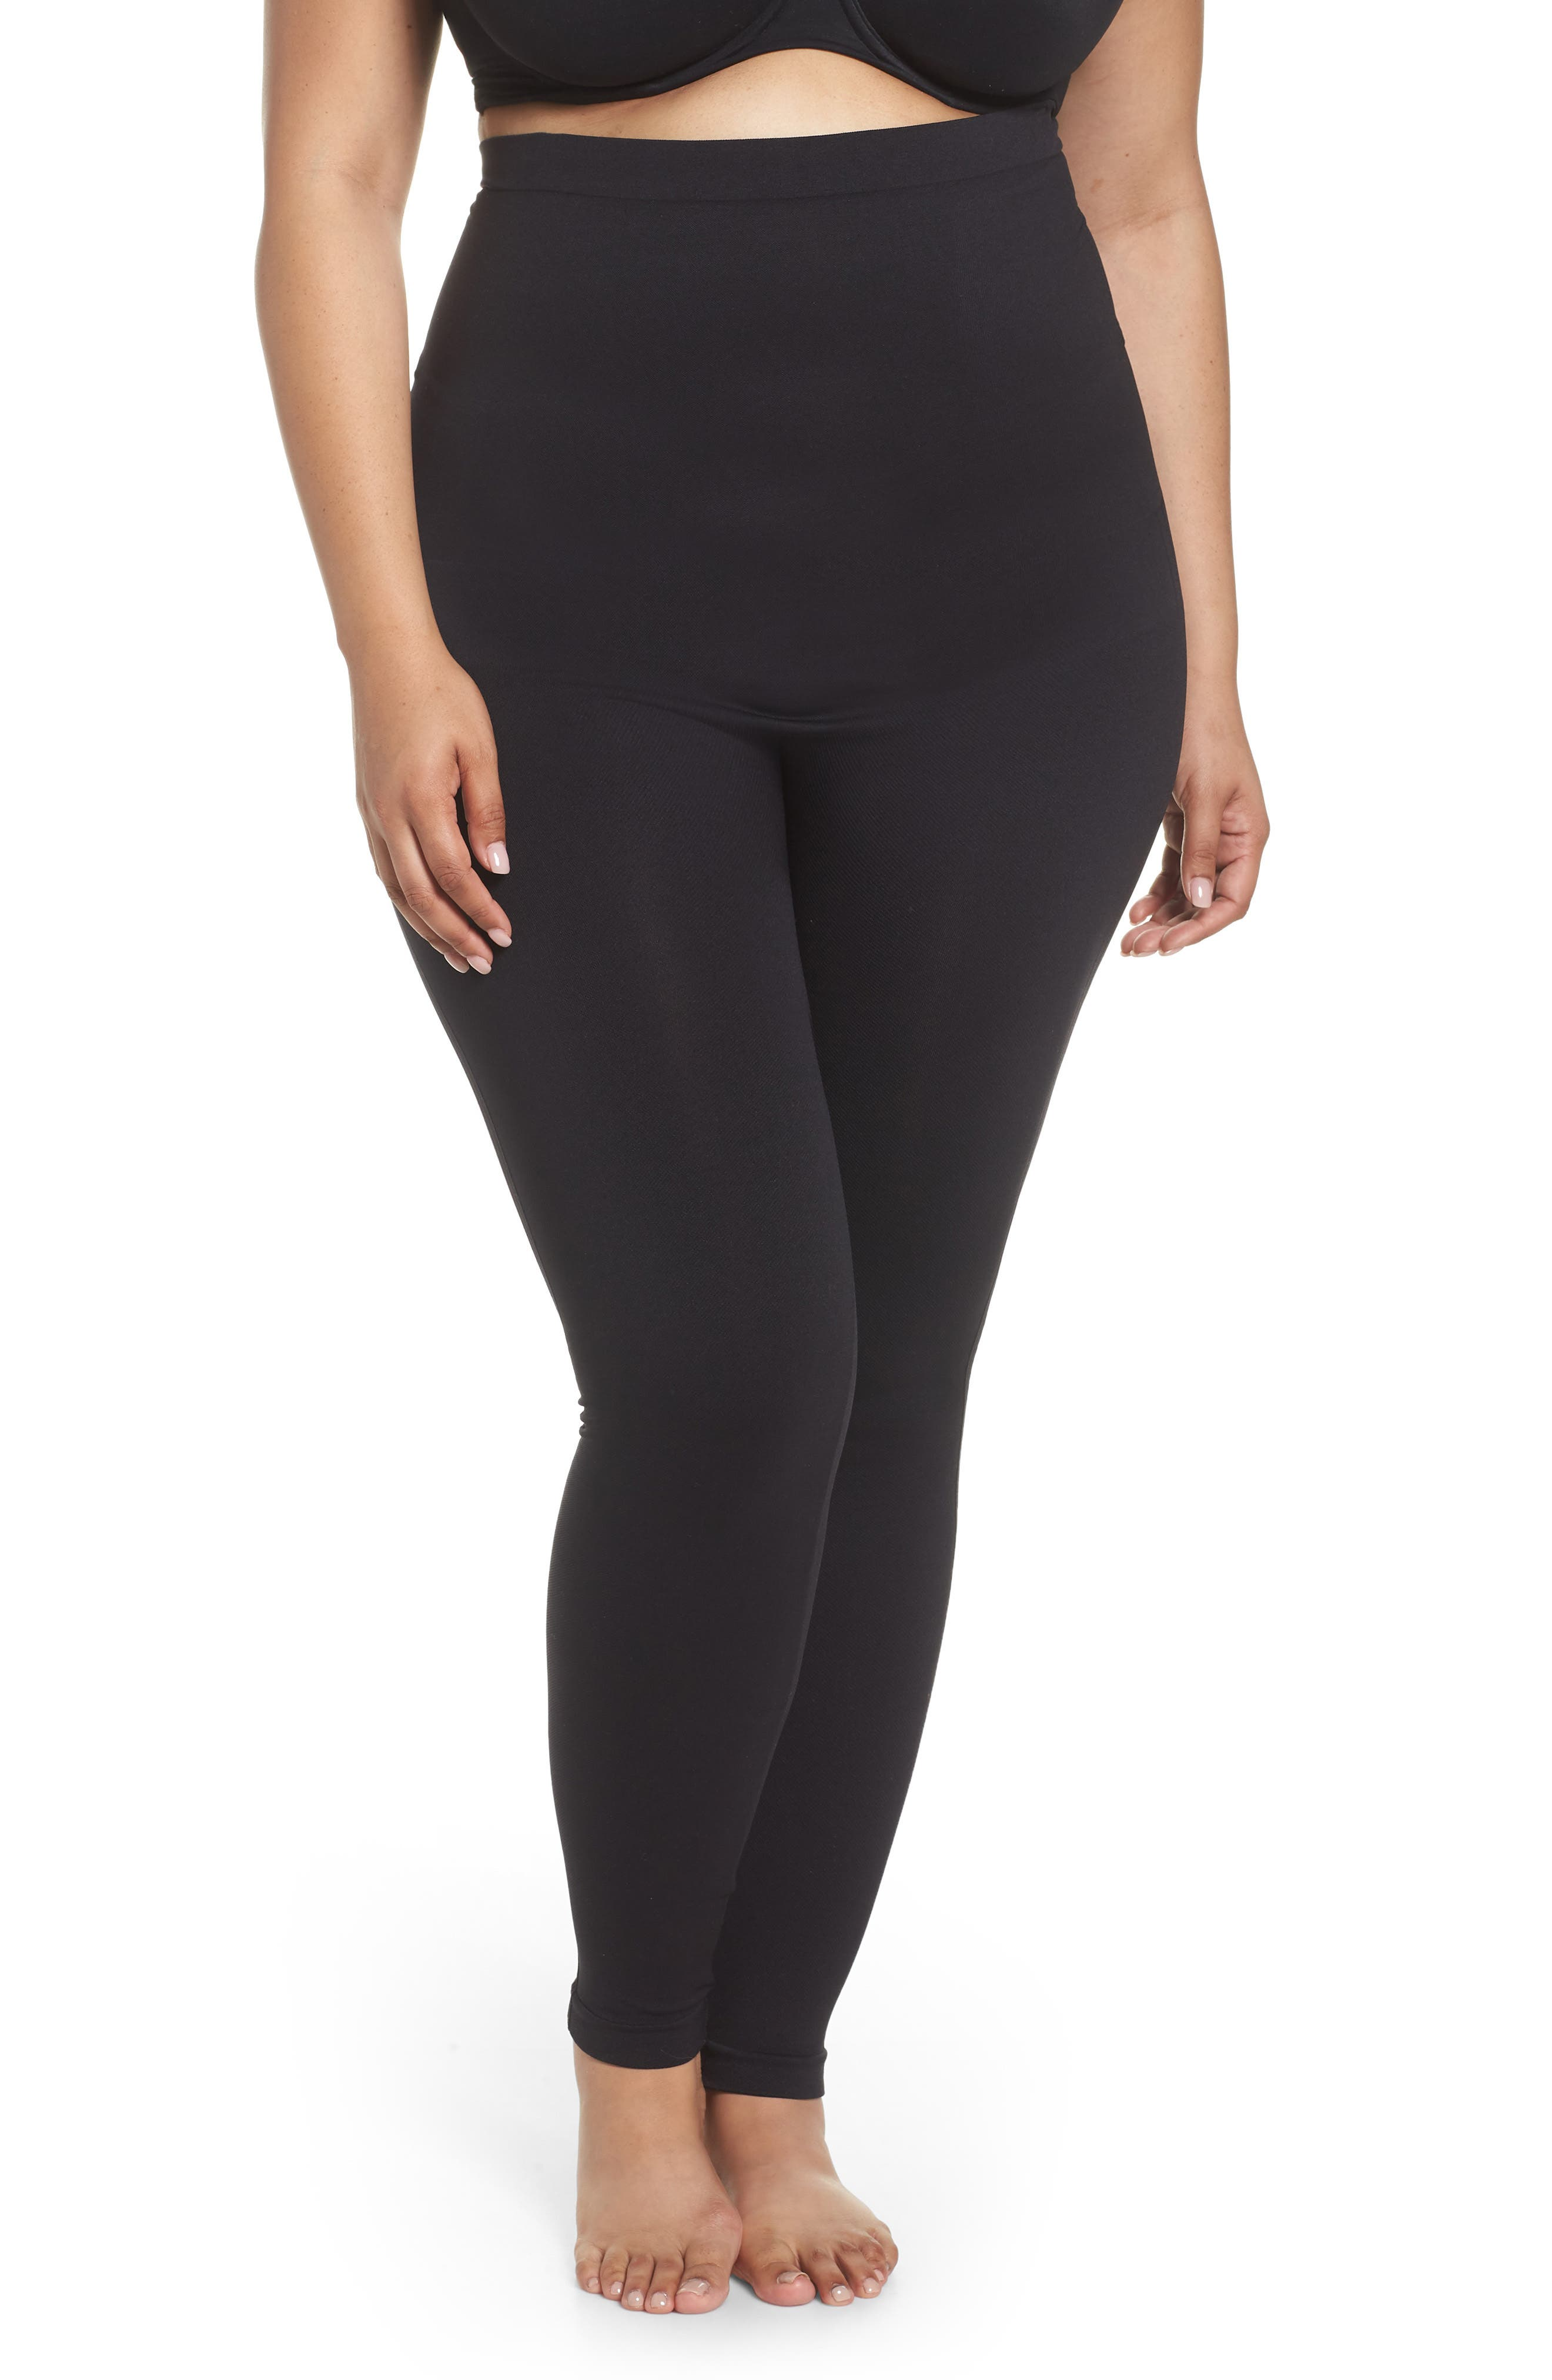 Look At Me Now Seamless Leggings,                             Main thumbnail 1, color,                             VERY BLACK